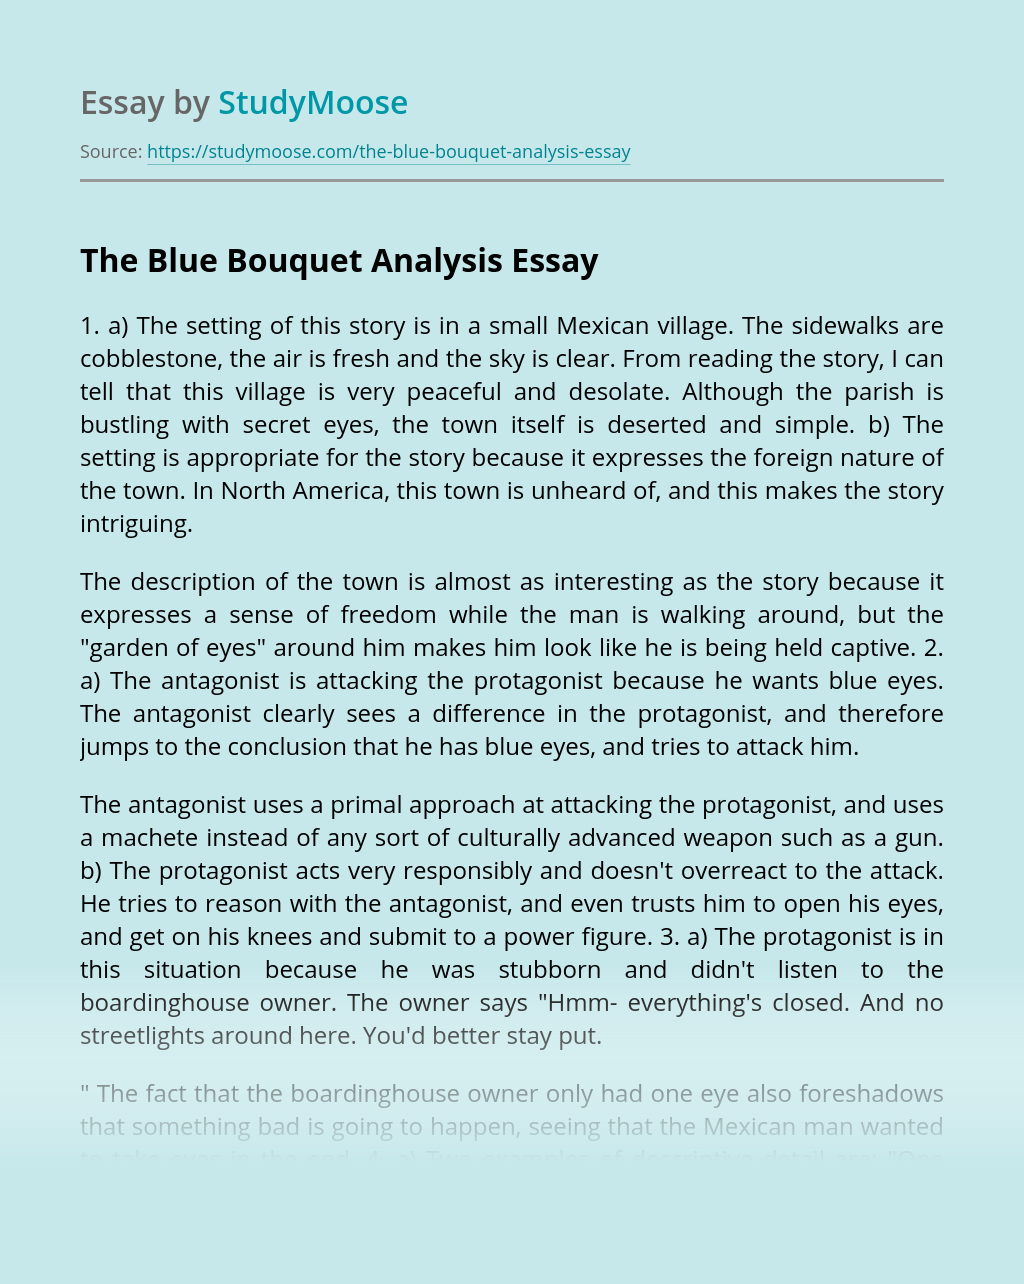 The Blue Bouquet Analysis